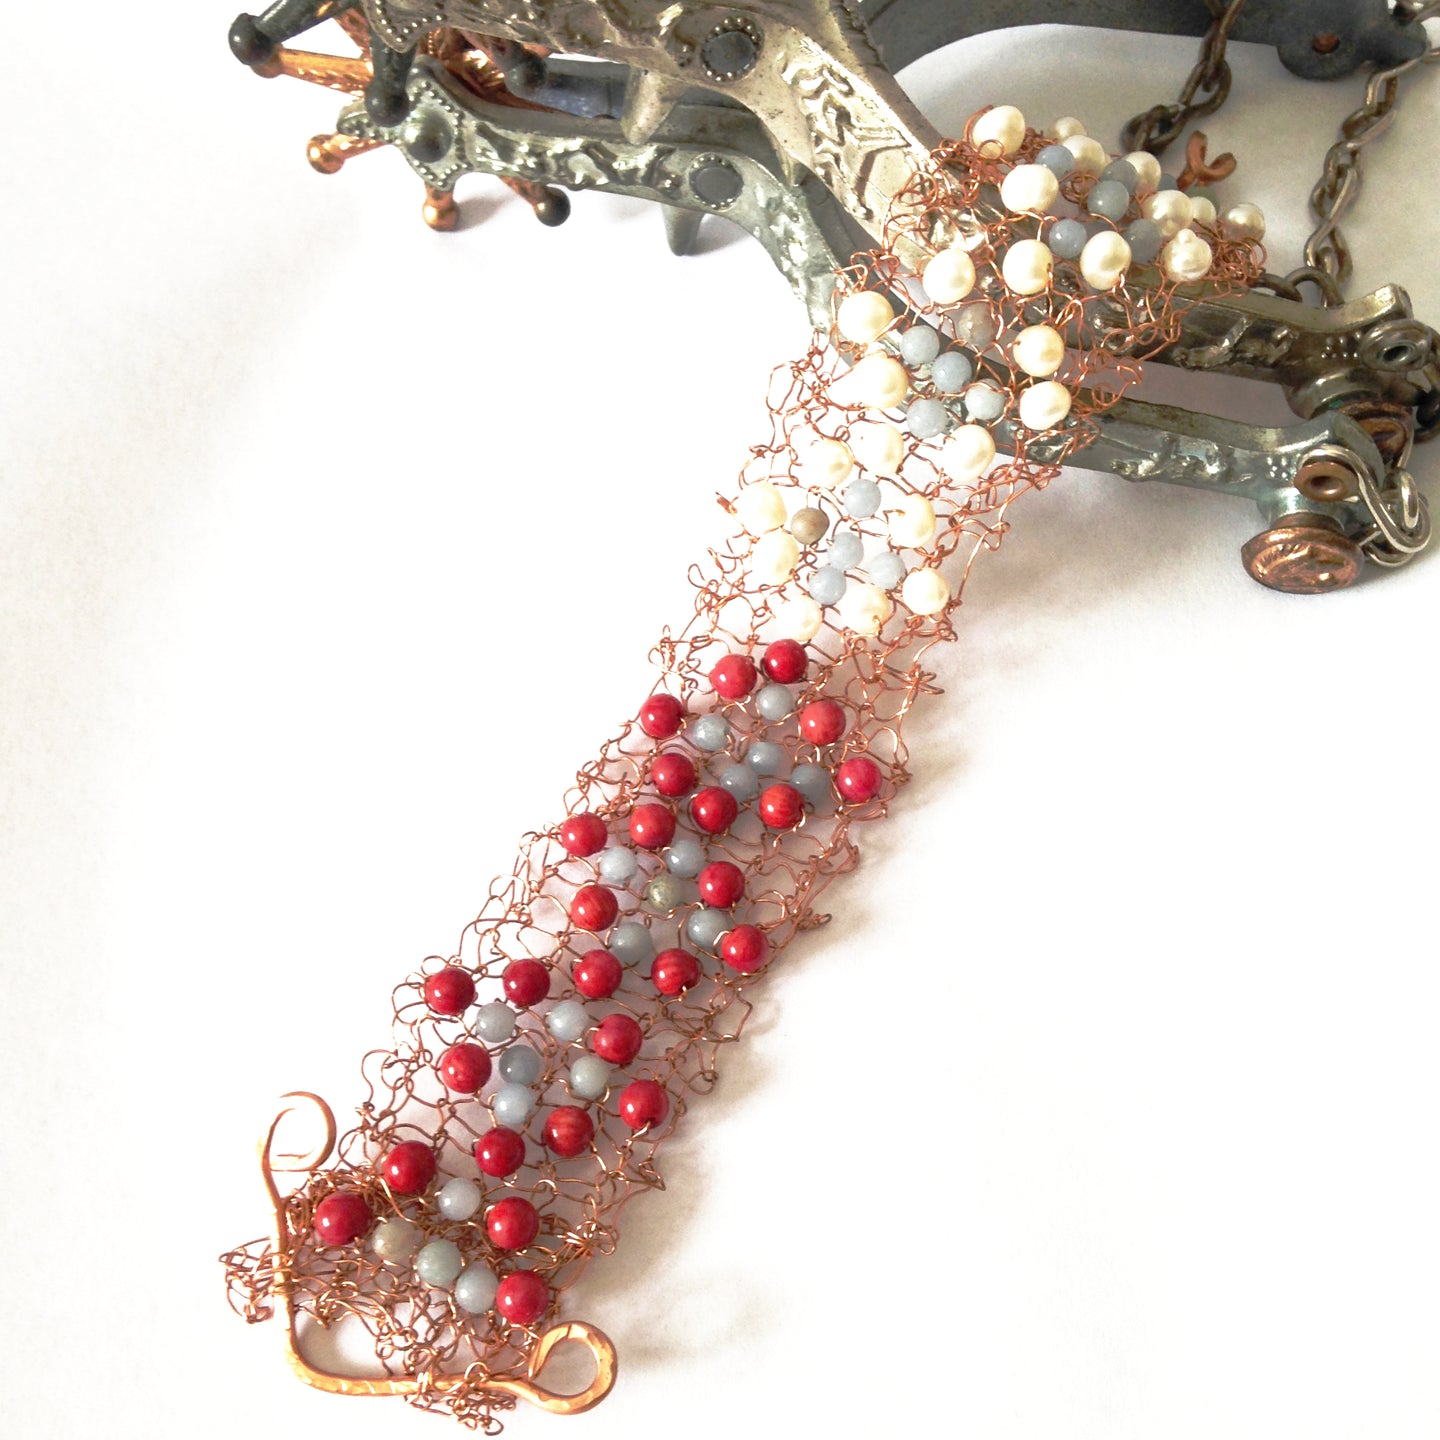 One-off knitted copper bracelet with pearls and gemstones by Buckaroo Bling